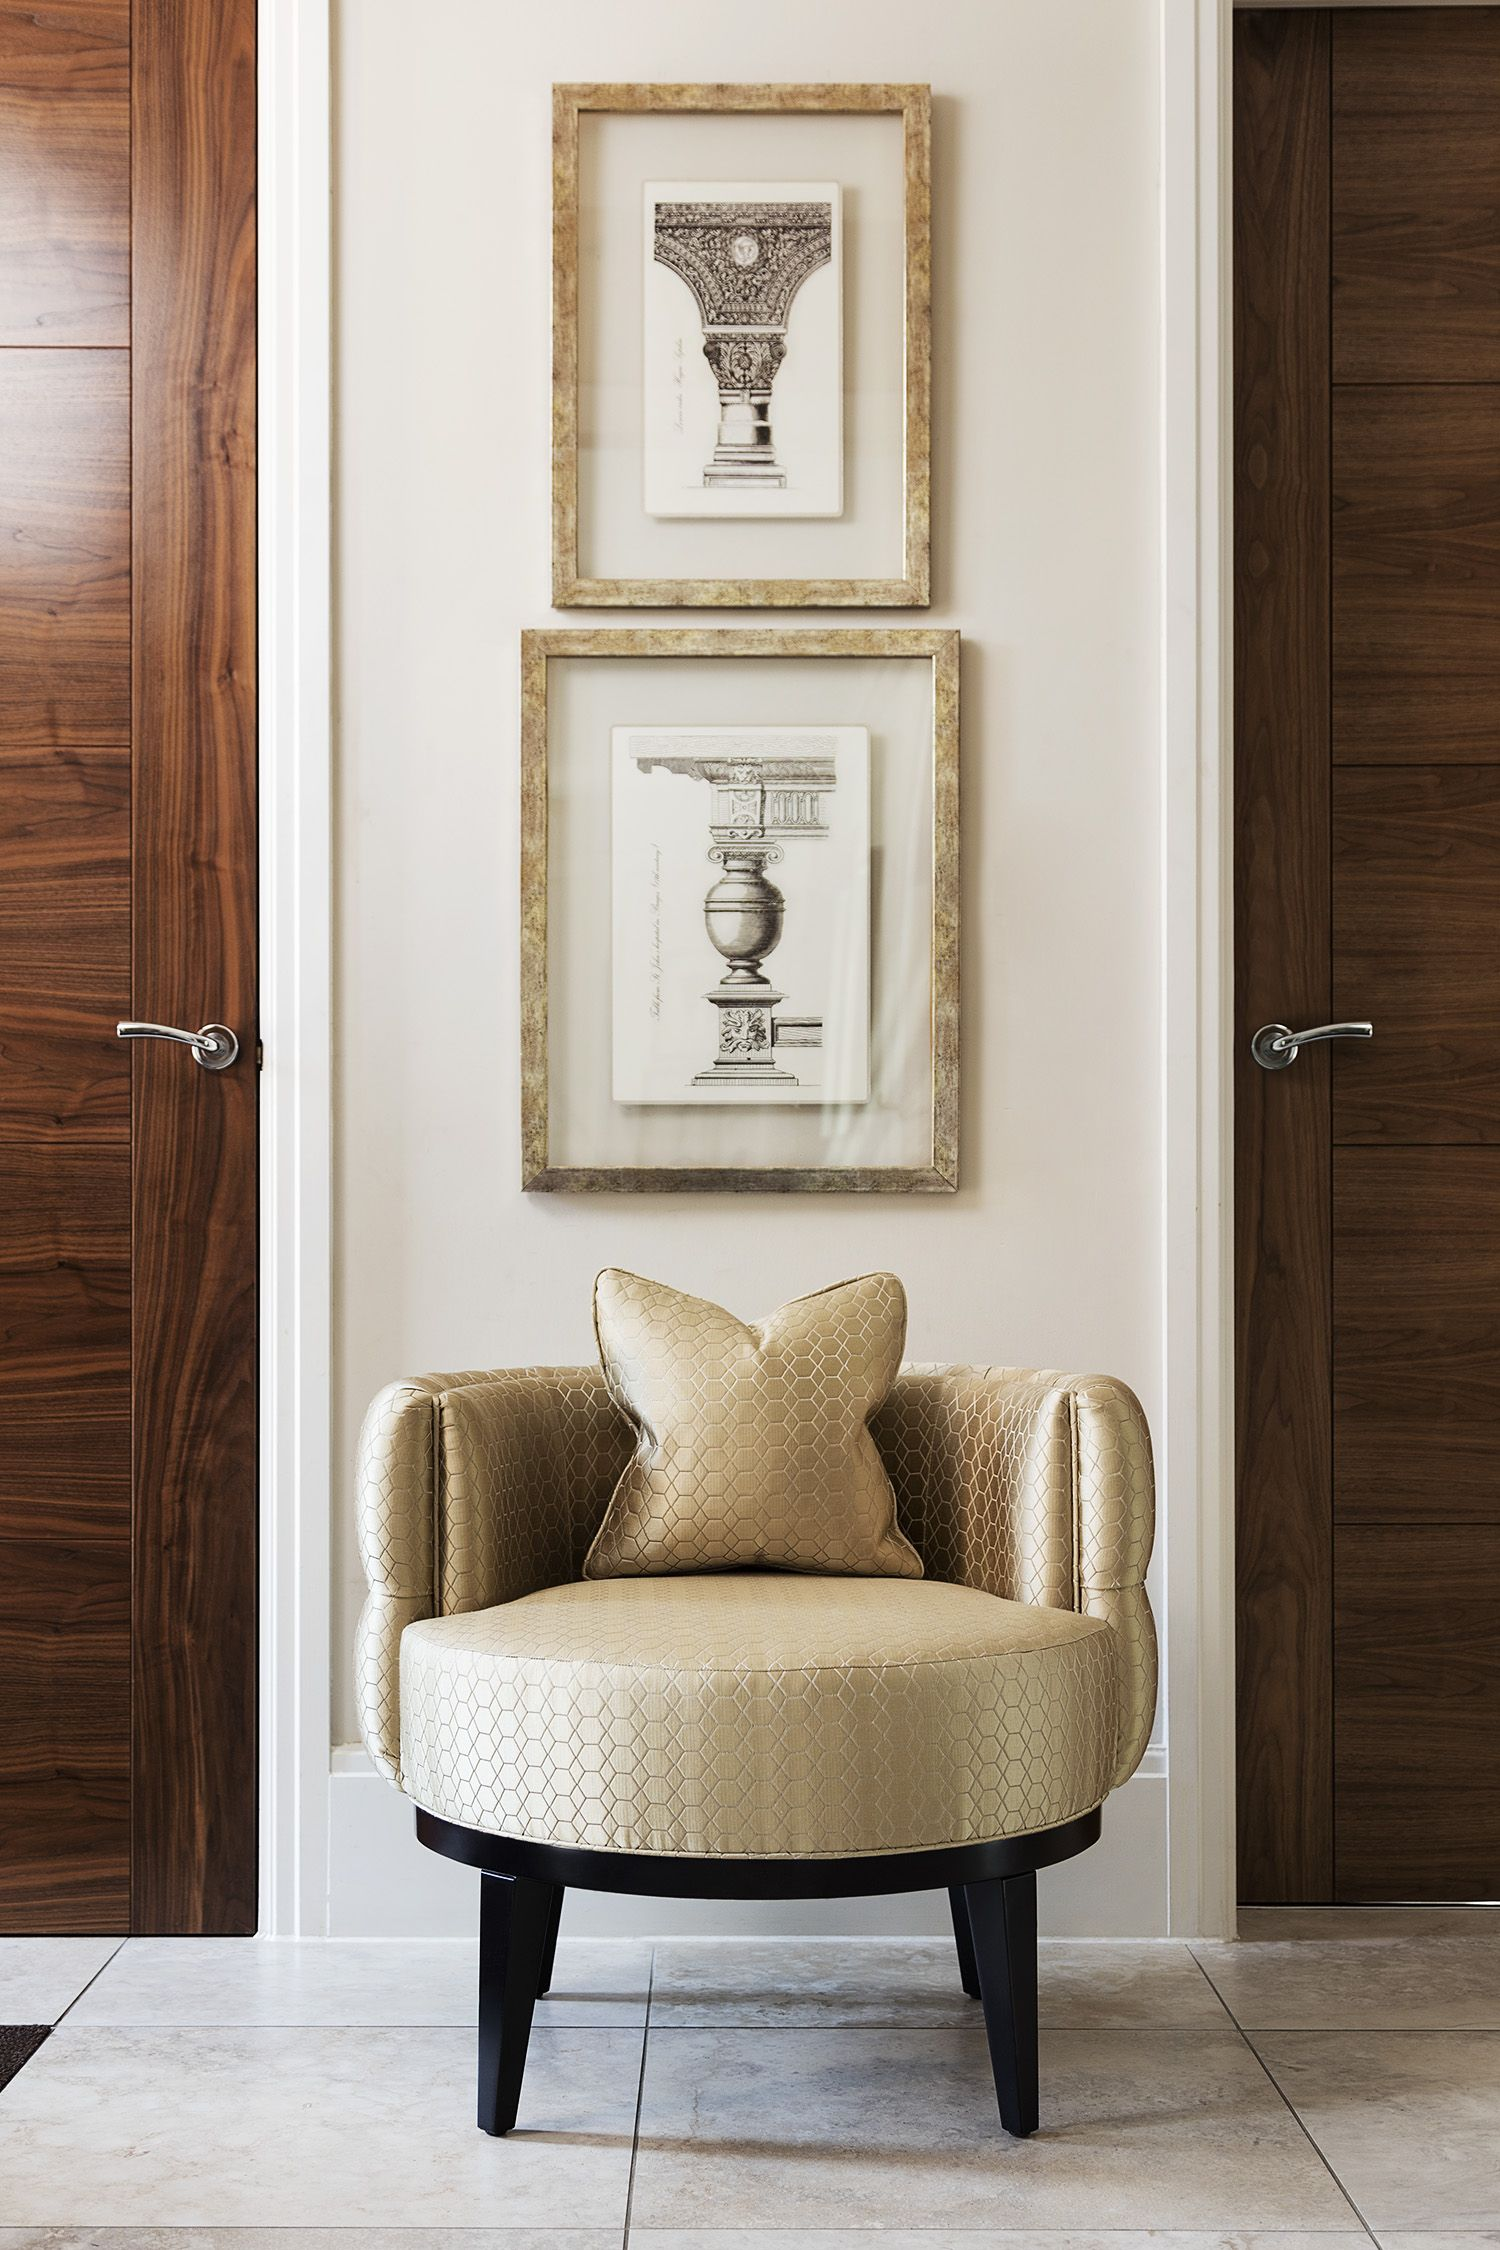 OSCAR ROUND ACCENT CHAIR. This Charming U0026 Luxury Occasional Chair With The  Chic Curves Features A Deep Buttoned Back U0026 Pipping Details.